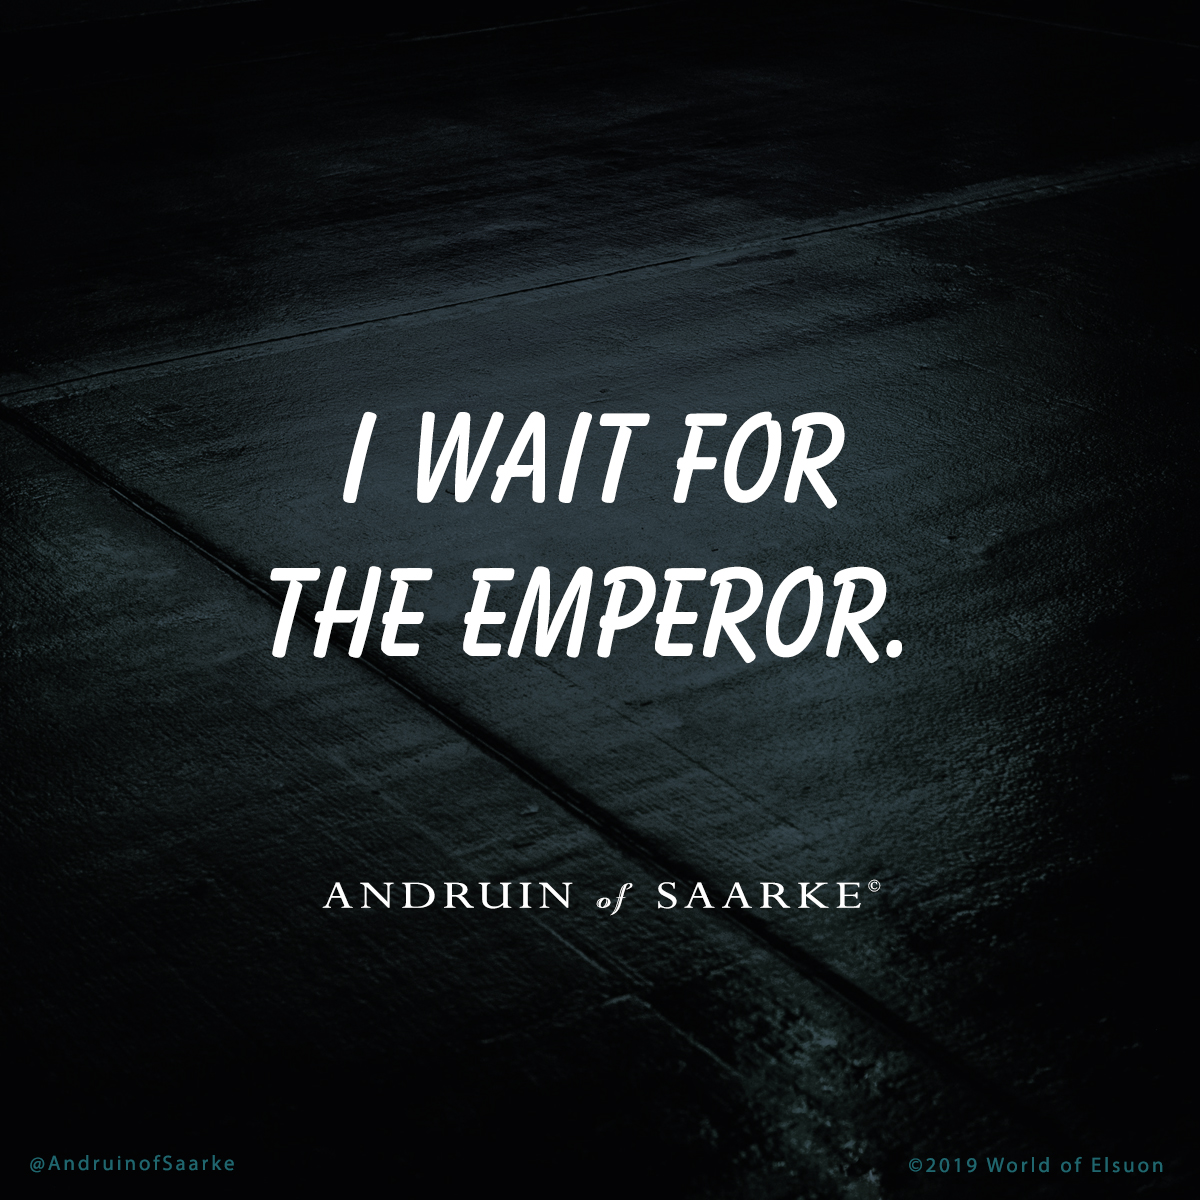 Andruin 03 - I wait for the emperor